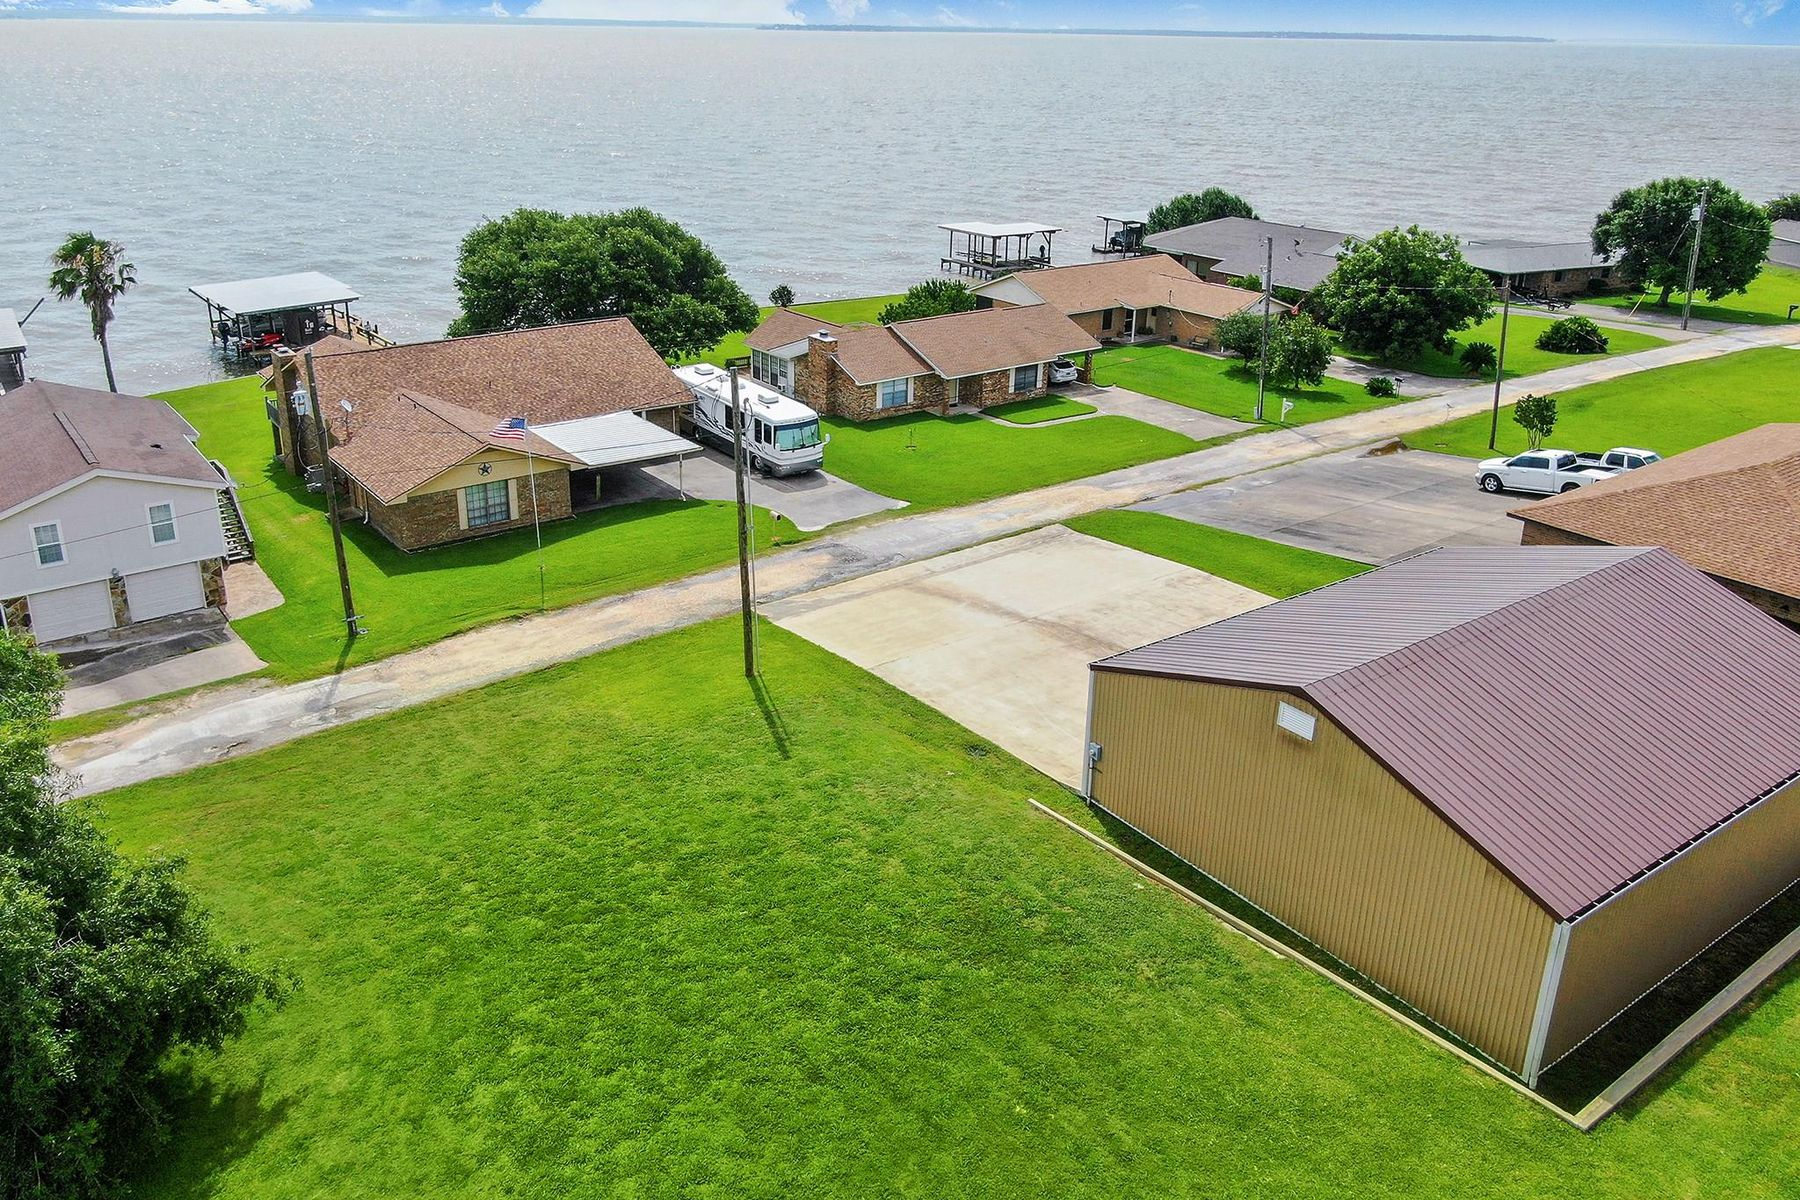 Land for Sale at 140 Fishermans Bend Drive Pointblank, Texas 77364 United States